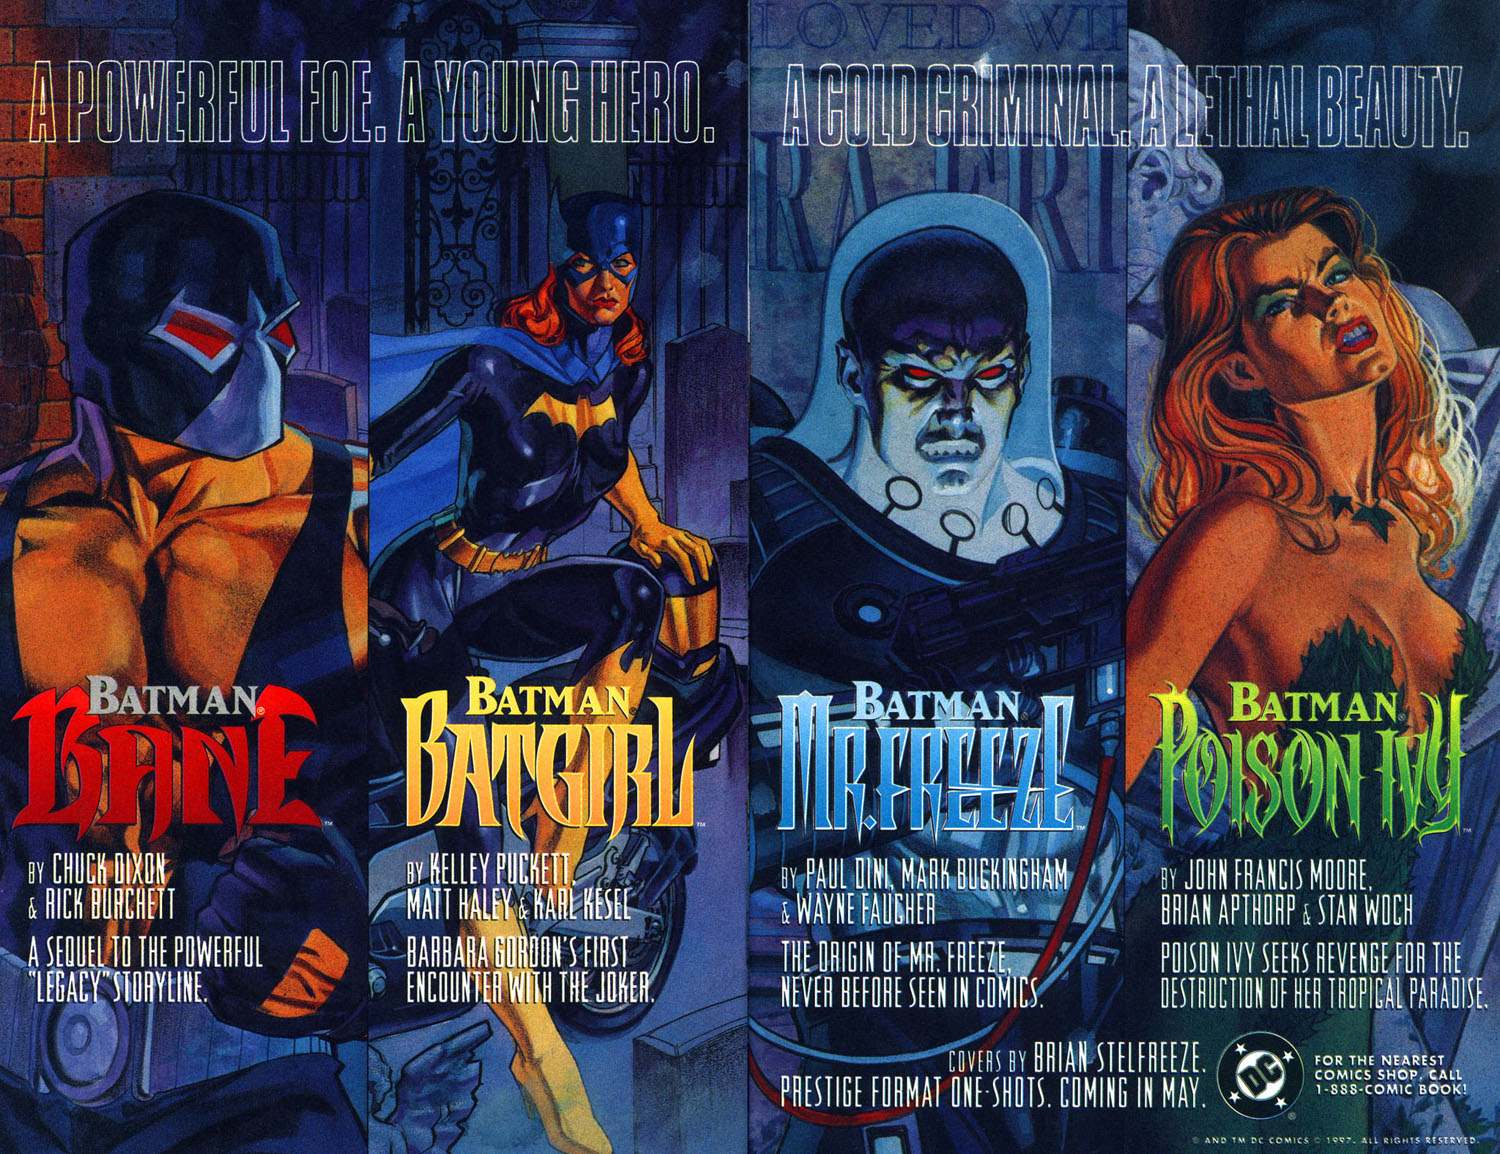 séries batman 1997 bane hera venenosa poison ivy mr. freeze sr. frio batgirl